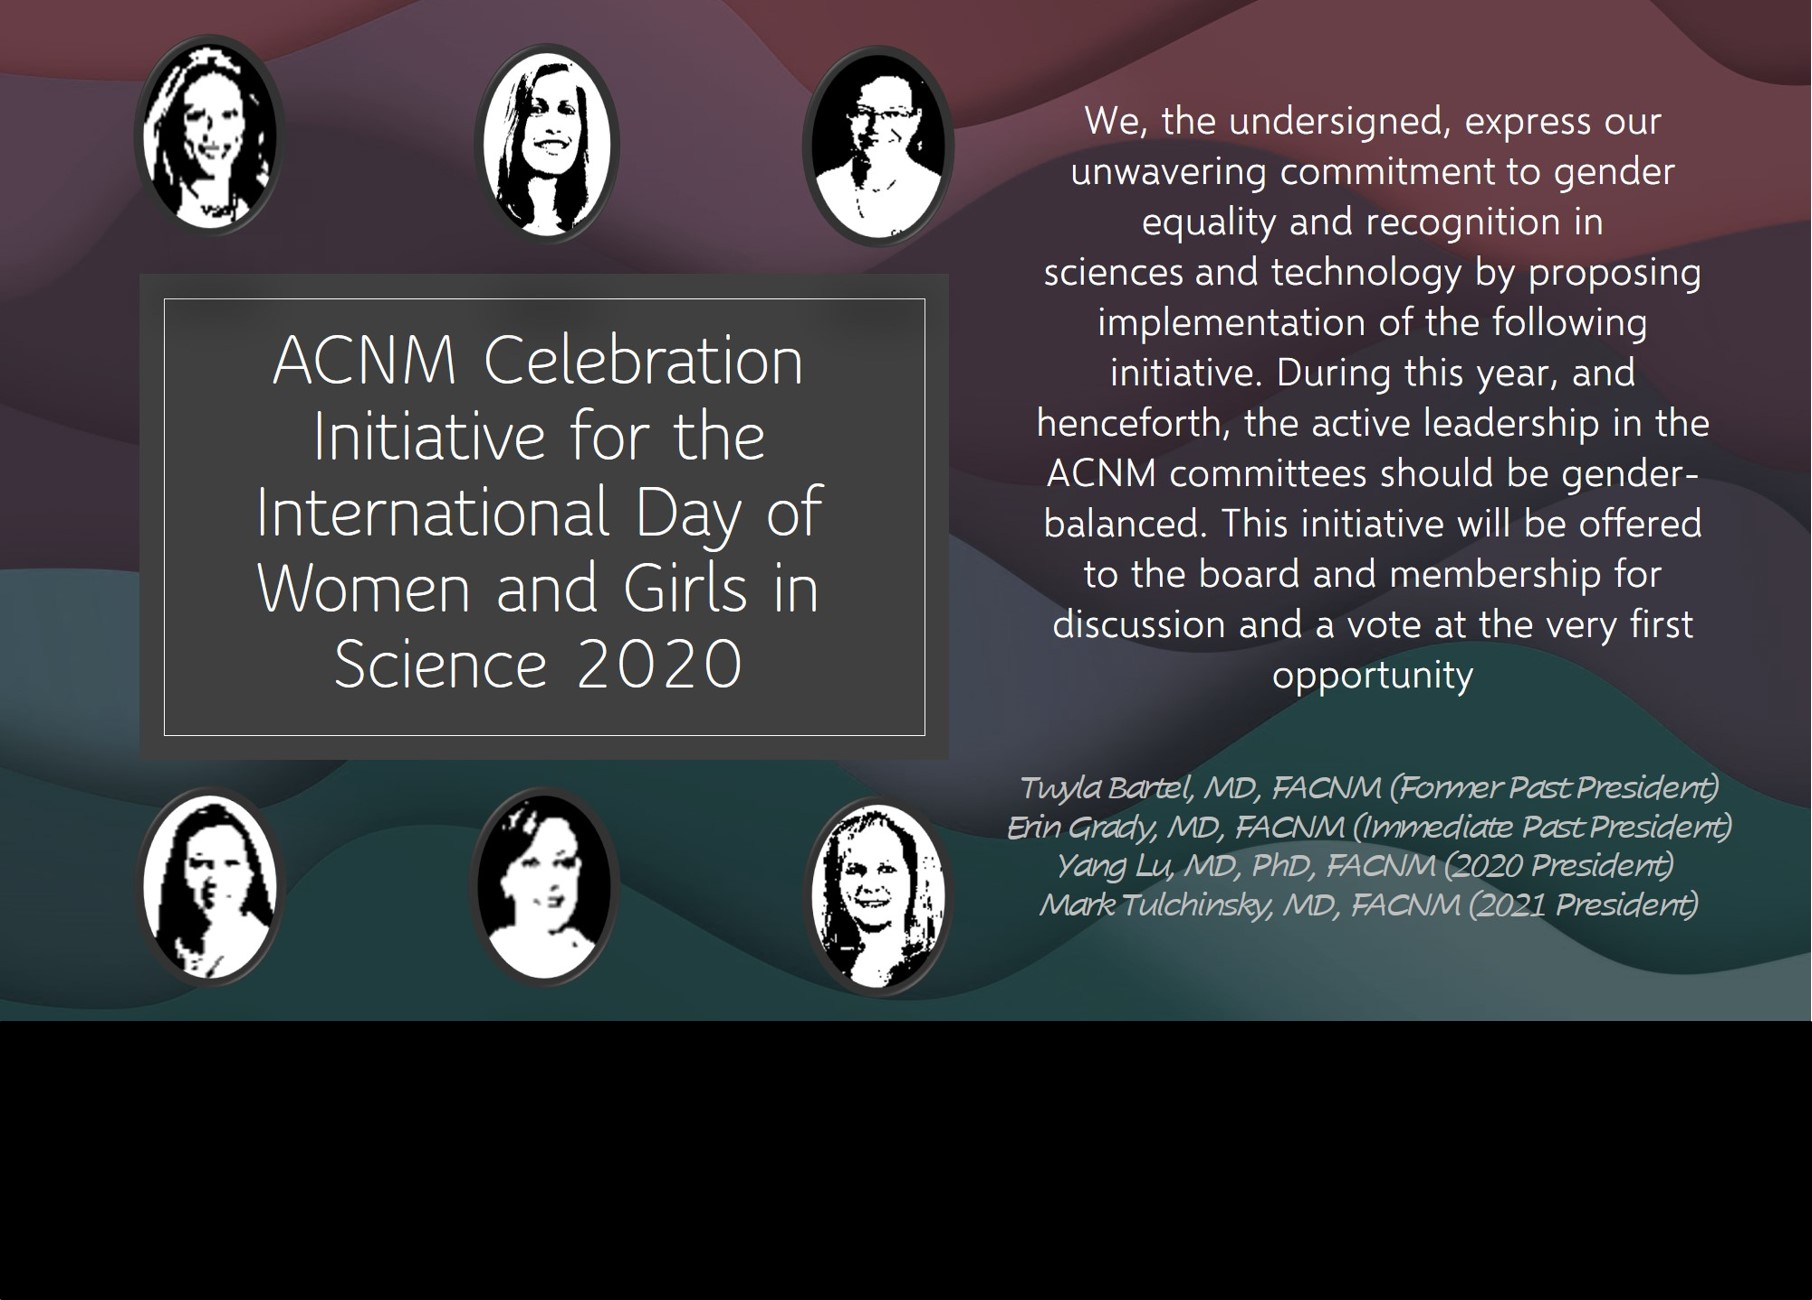 2020 ACNM Initiative for Women